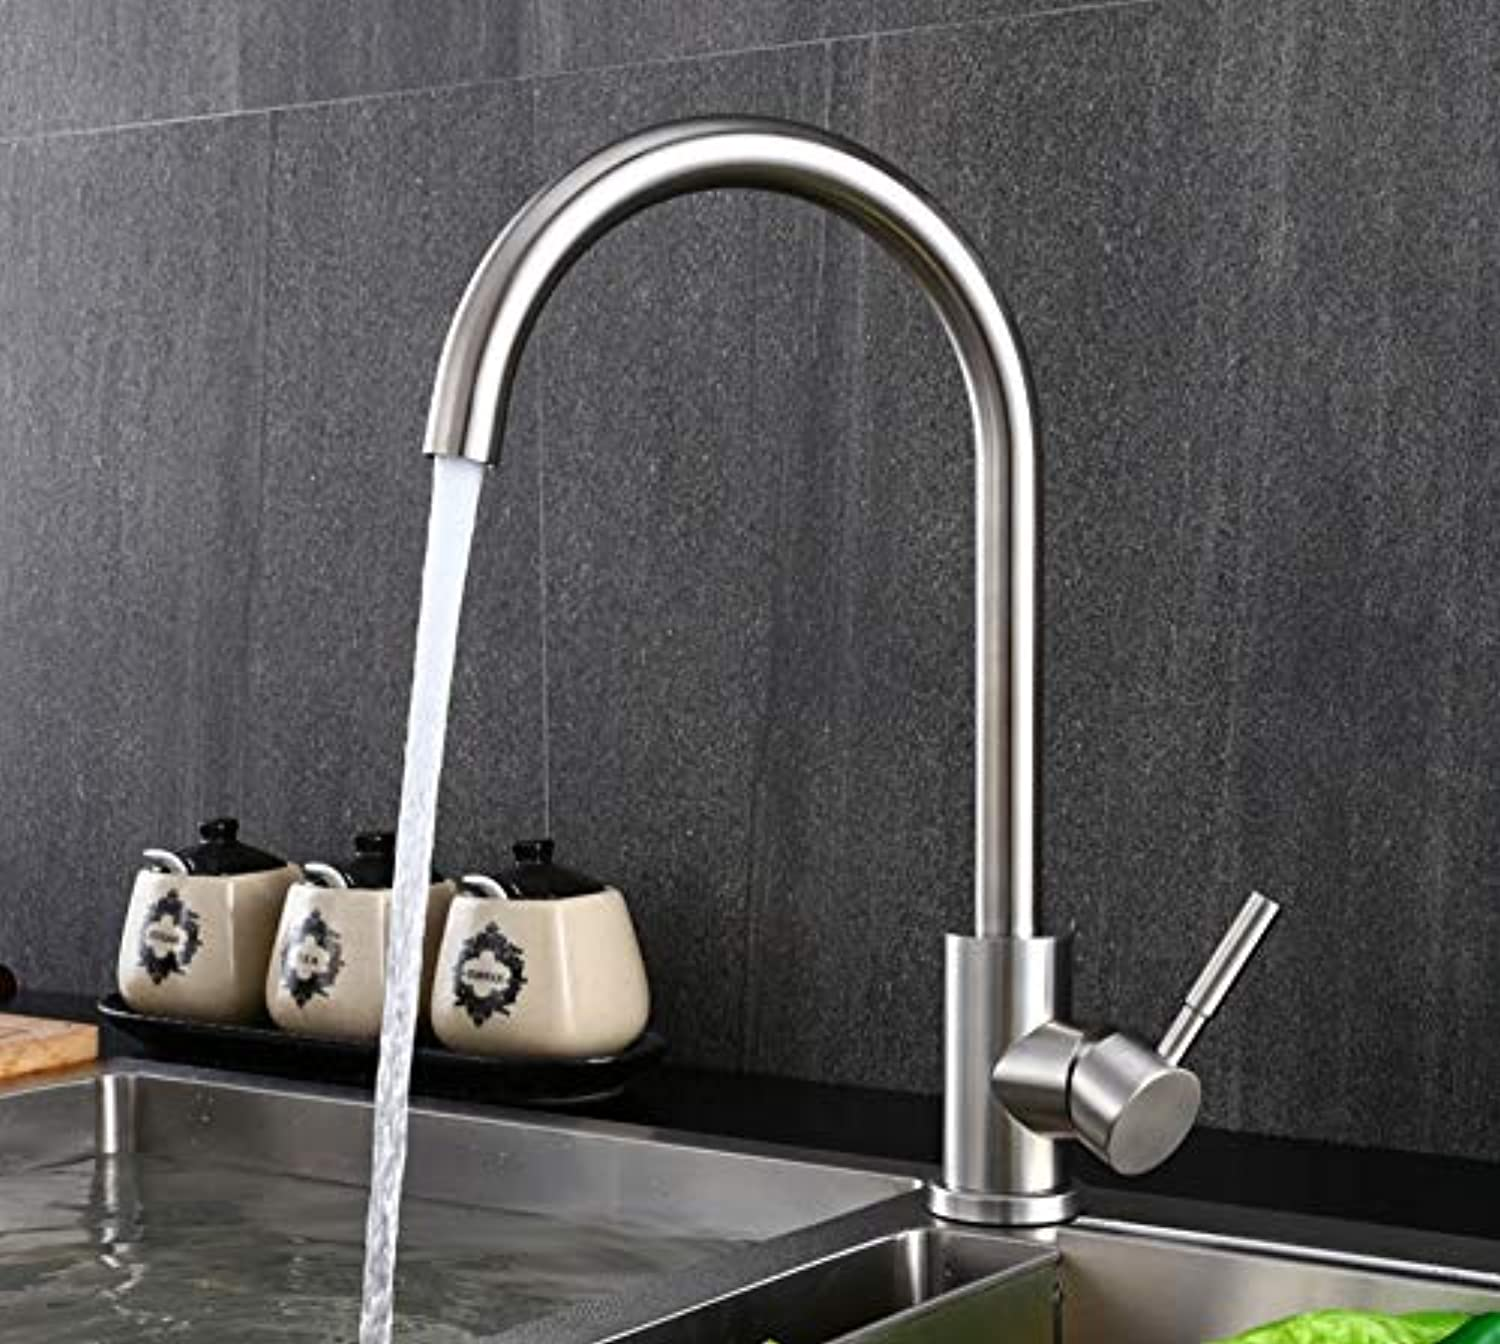 ROKTONG Faucet Stainless Steel Lead-Free Kitchen Faucet Hot And Cold Sink Sink Faucet